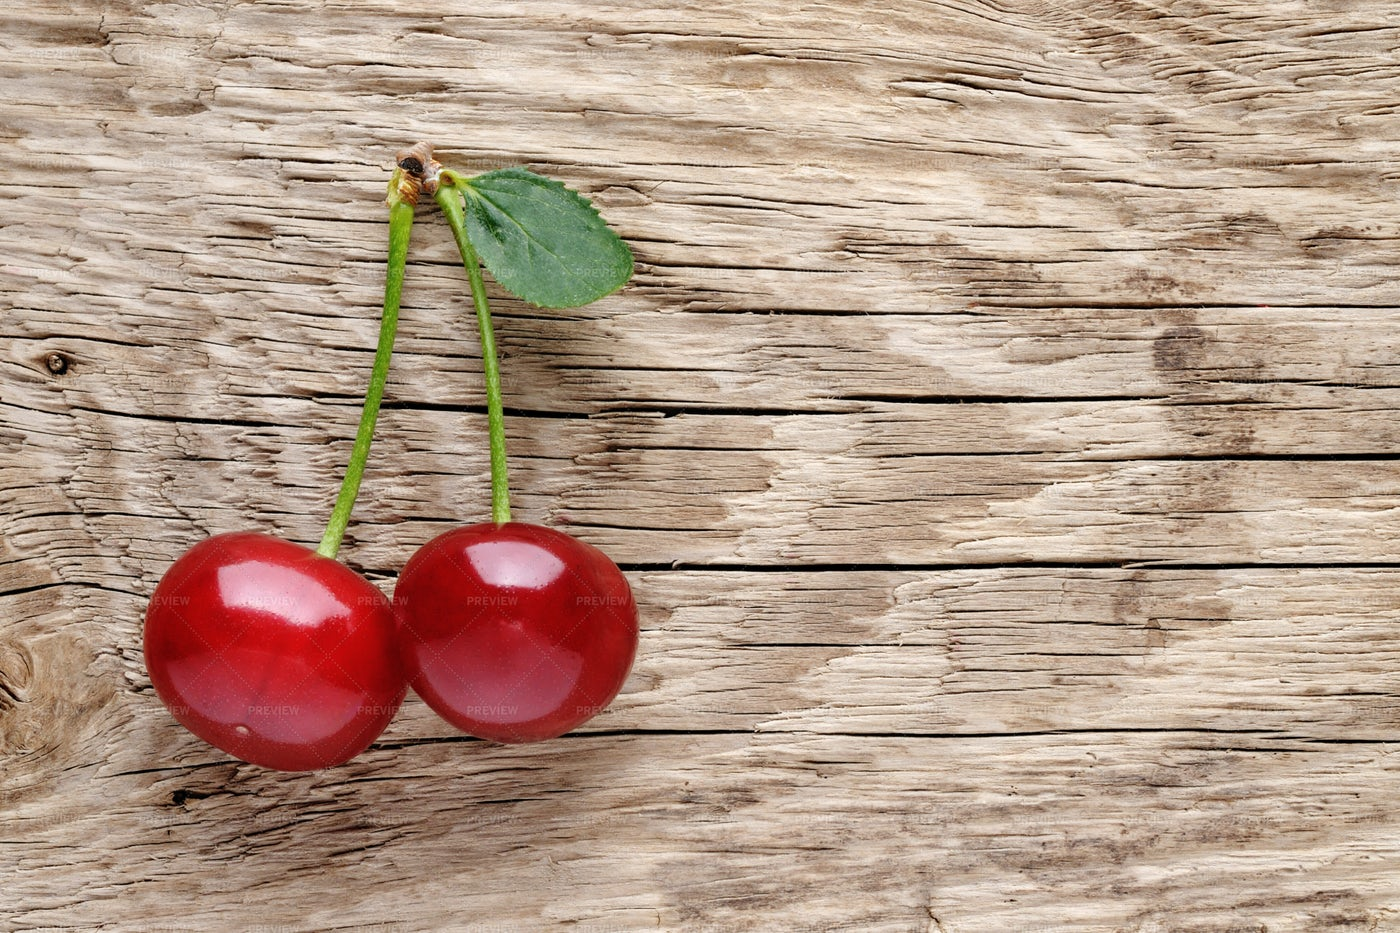 Cherry On Wooden Background: Stock Photos